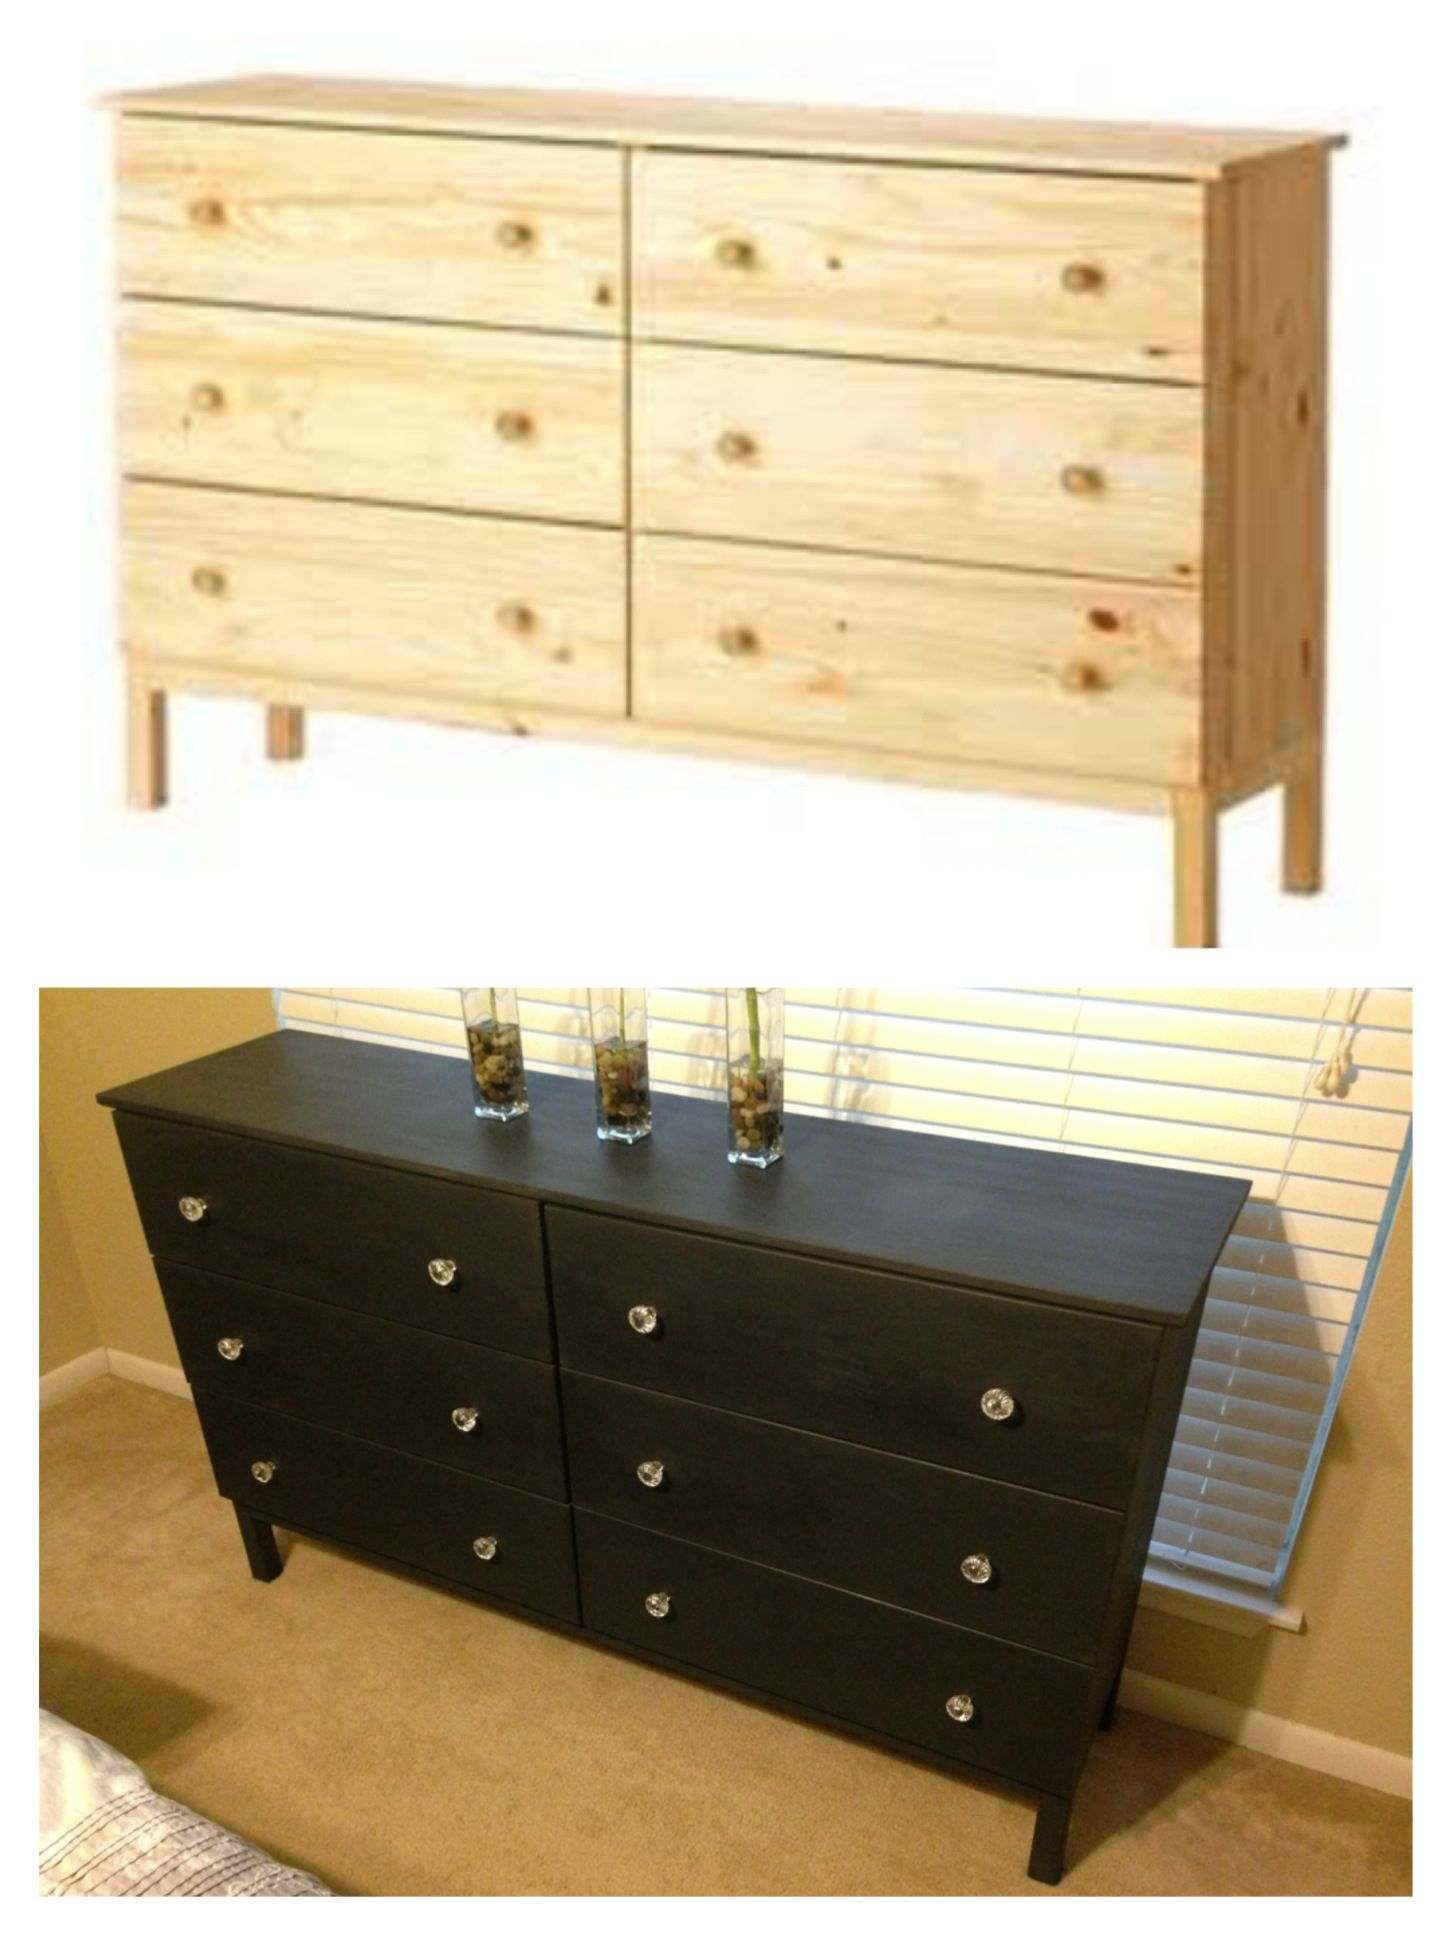 Ikea Tarva dresser refinished with Annie Sloan chalk paint in Graphite with clear wax finish and